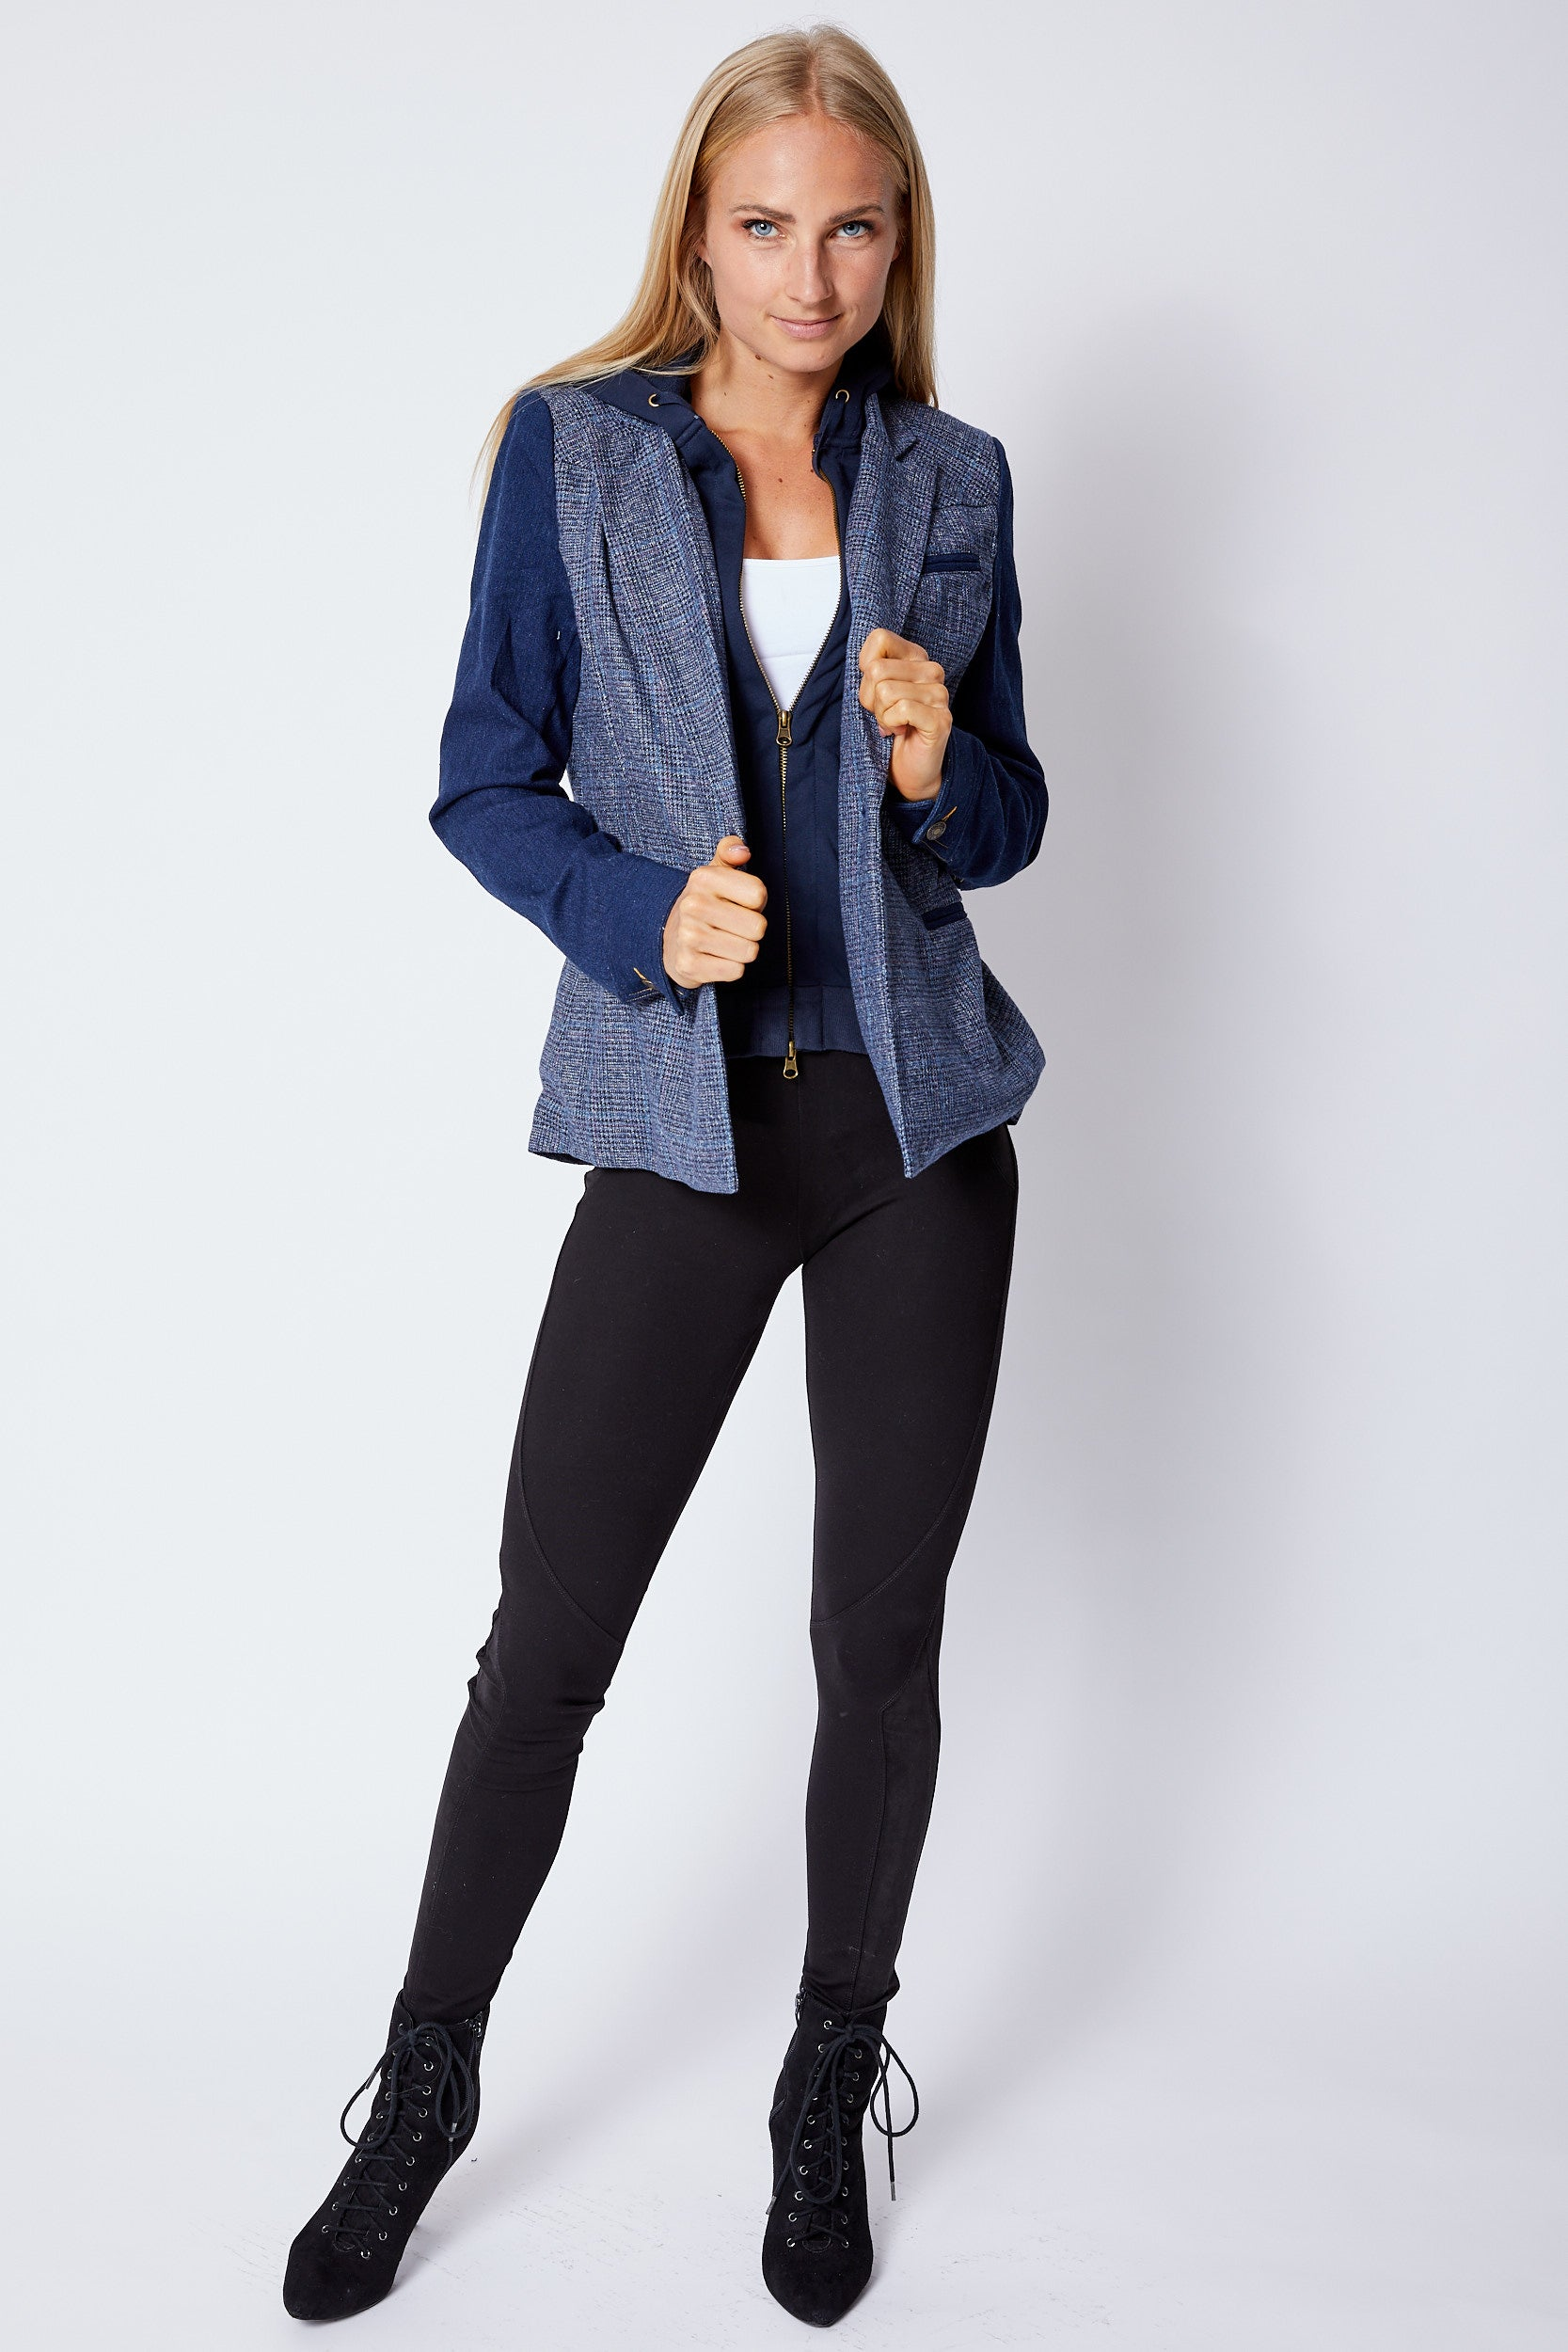 Blue Denim w/ Tweed Zip-Out Hoodie Jacket - Jacqueline B Clothing